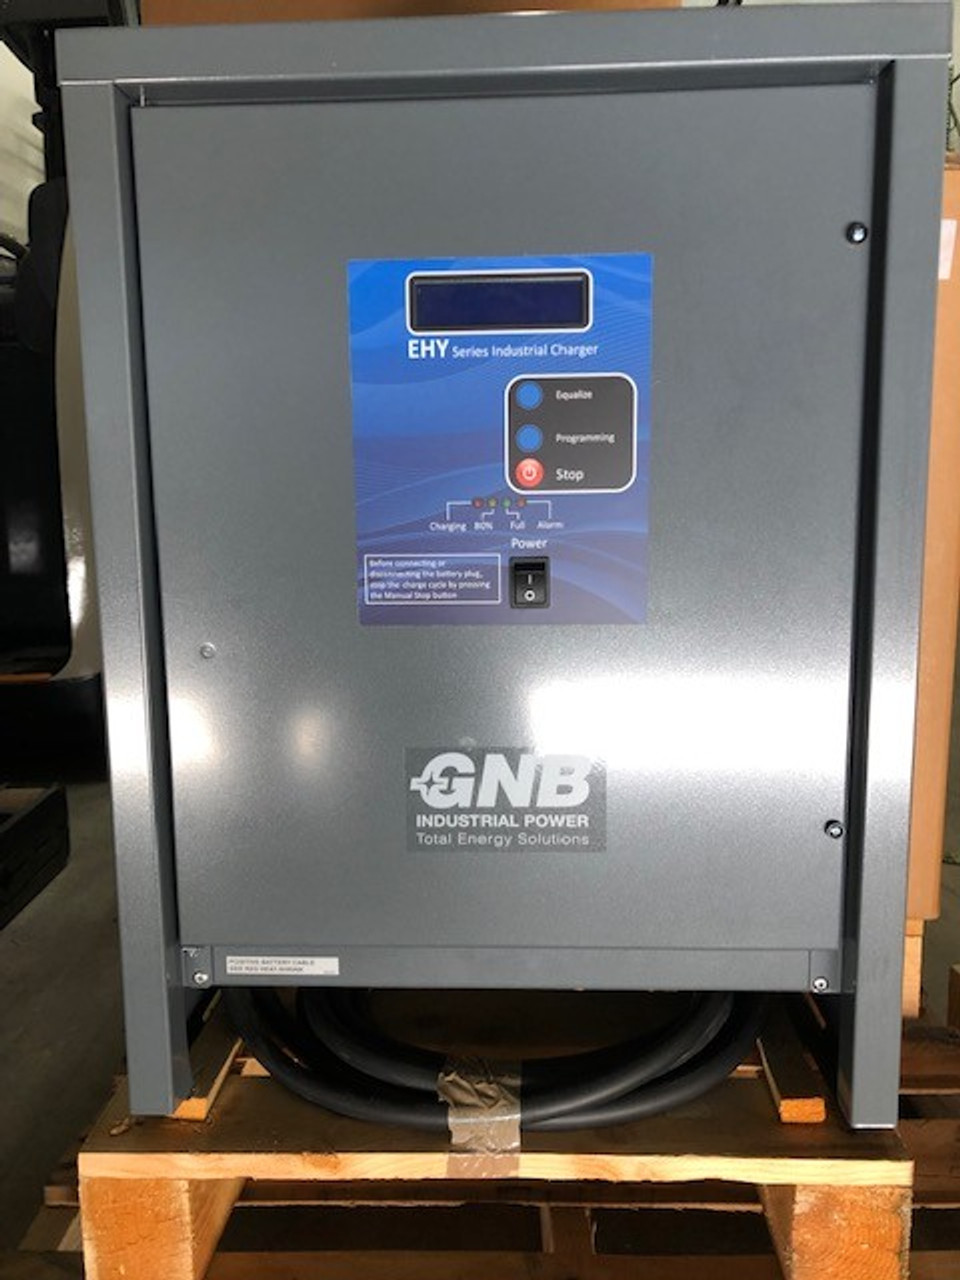 36 Volt NEW 3 Phase Forklift Battery Charger  875 Amp Hour 208/240/480 Volts Input